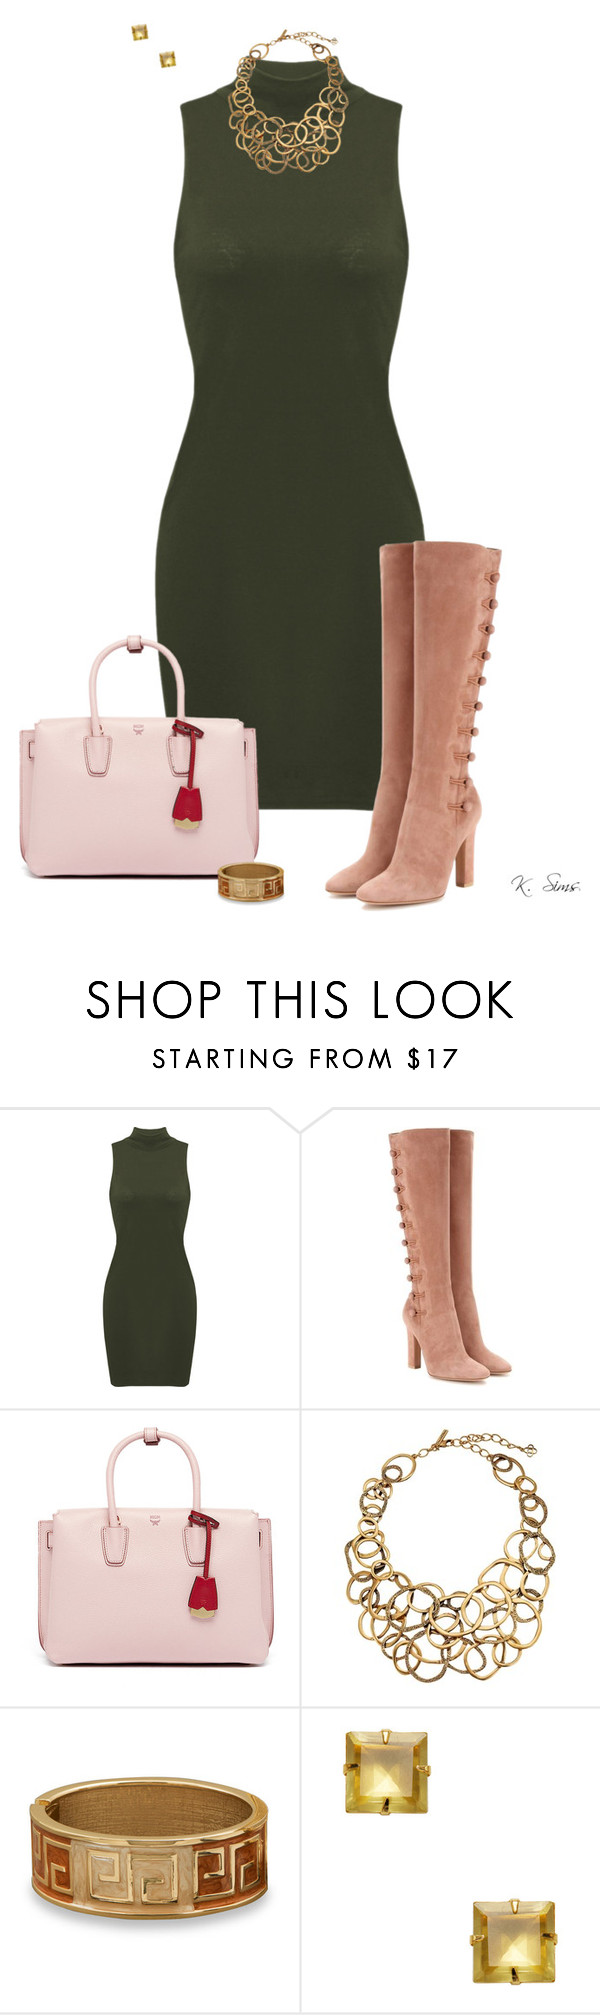 """""""Bold & Beautiful"""" by ksims-1 ❤ liked on Polyvore featuring Gianvito Rossi, MCM, Oscar de la Renta, BillyTheTree and Bounkit"""